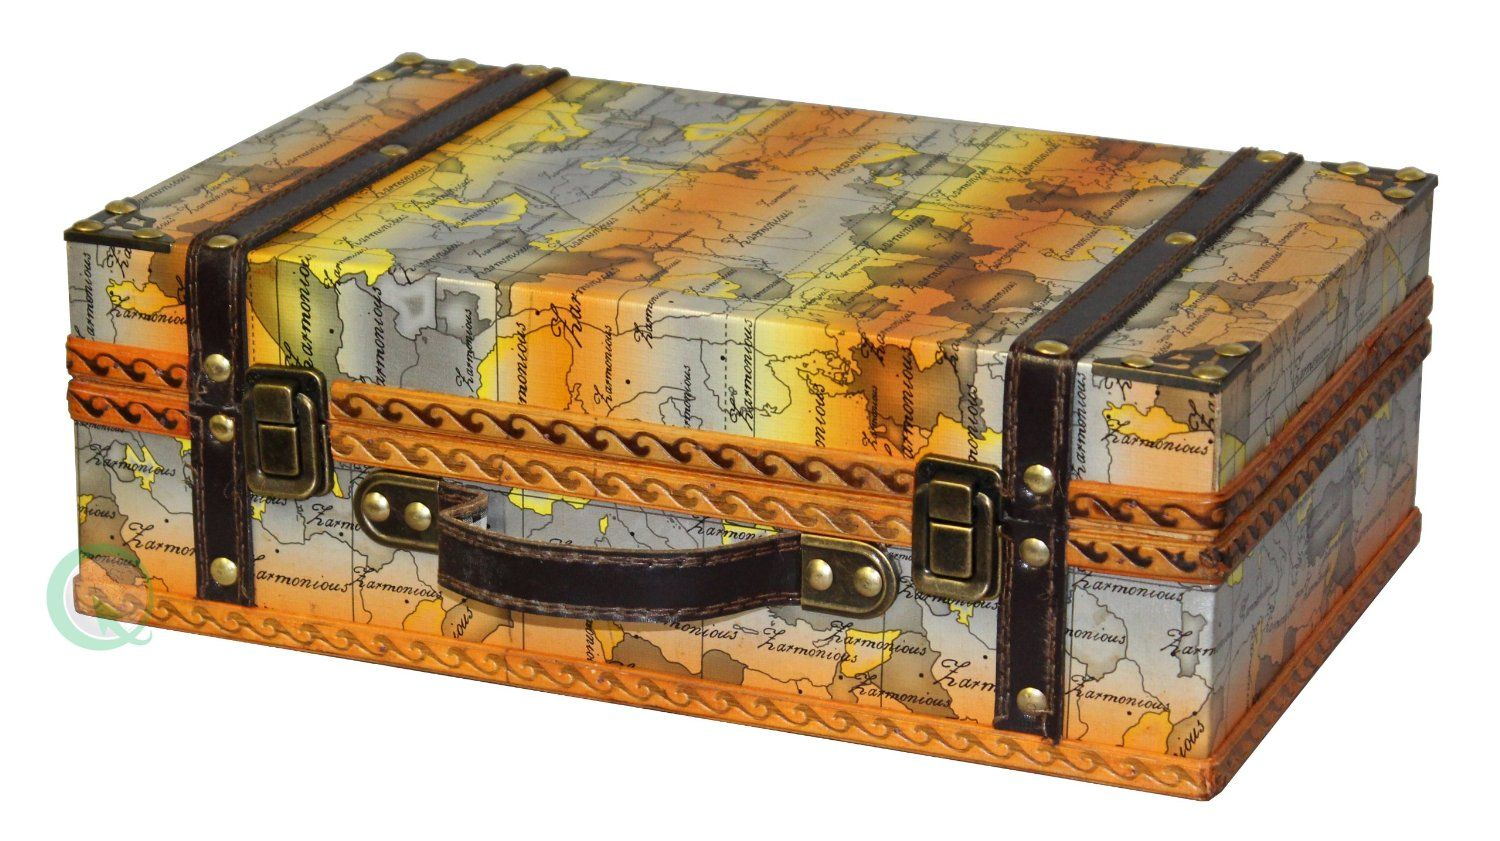 Amazon quickway imports old world map suitcasedecorative box amazon quickway imports old world map suitcasedecorative box trunks gumiabroncs Image collections